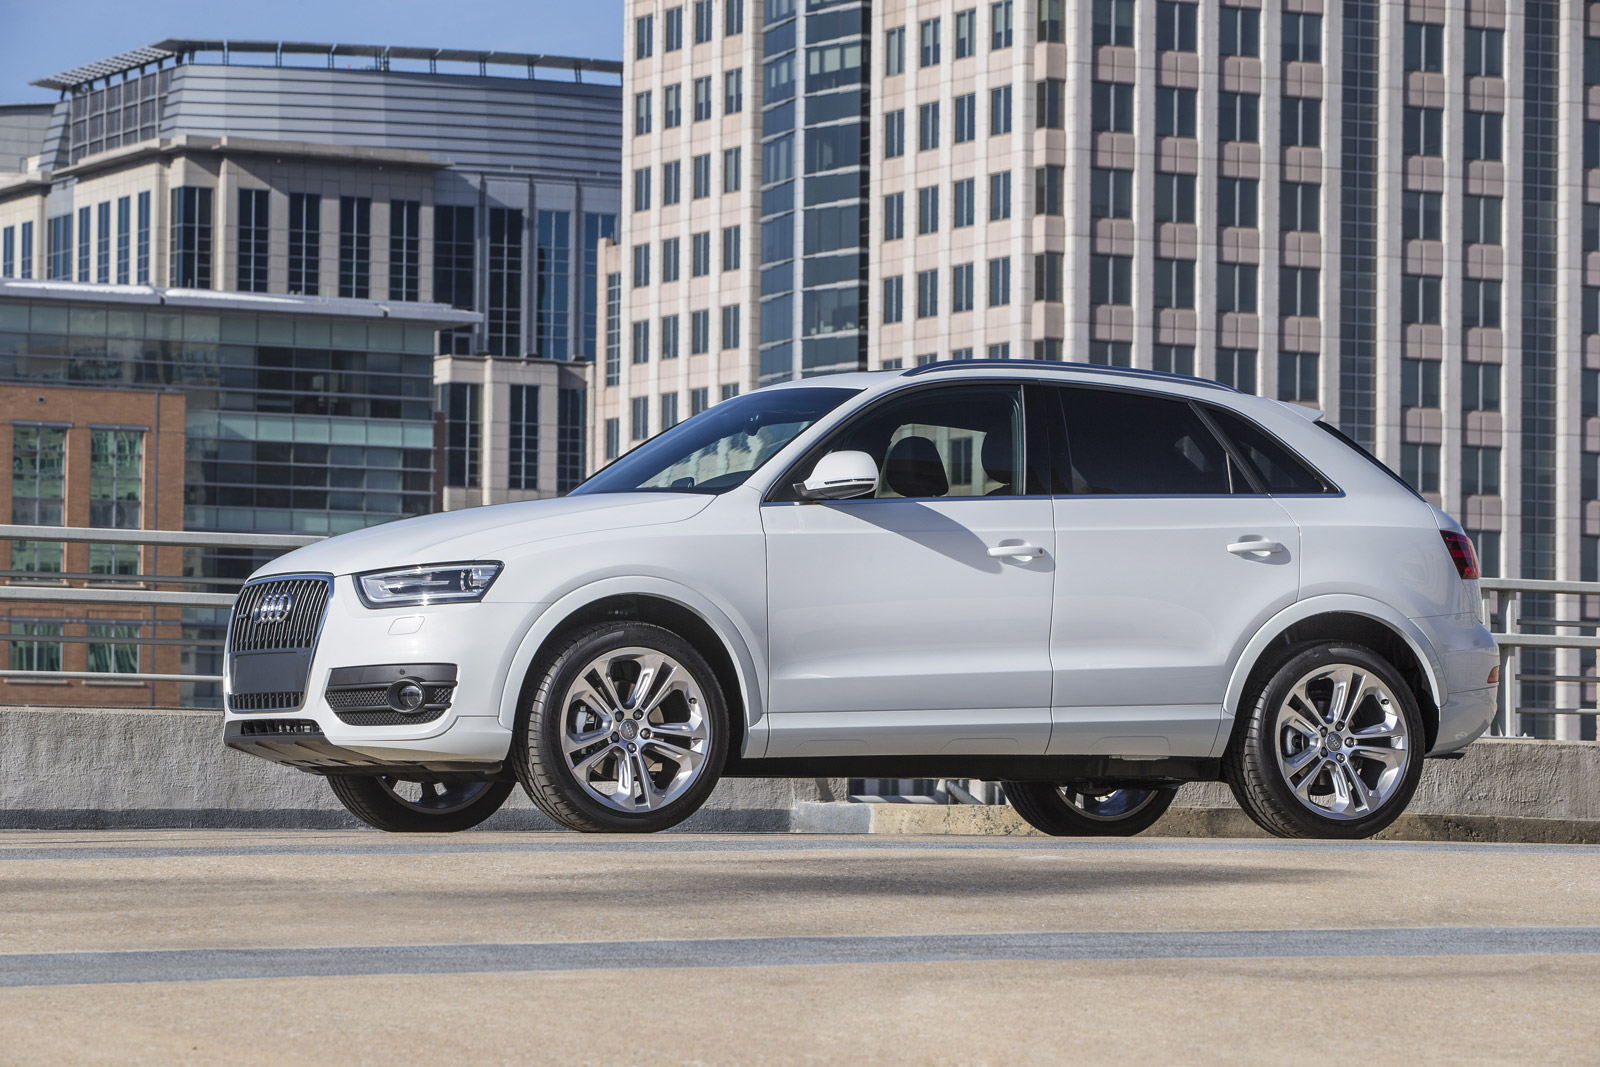 2015 Audi Q3 Priced At 33k Facing Off With Mercedes Gla